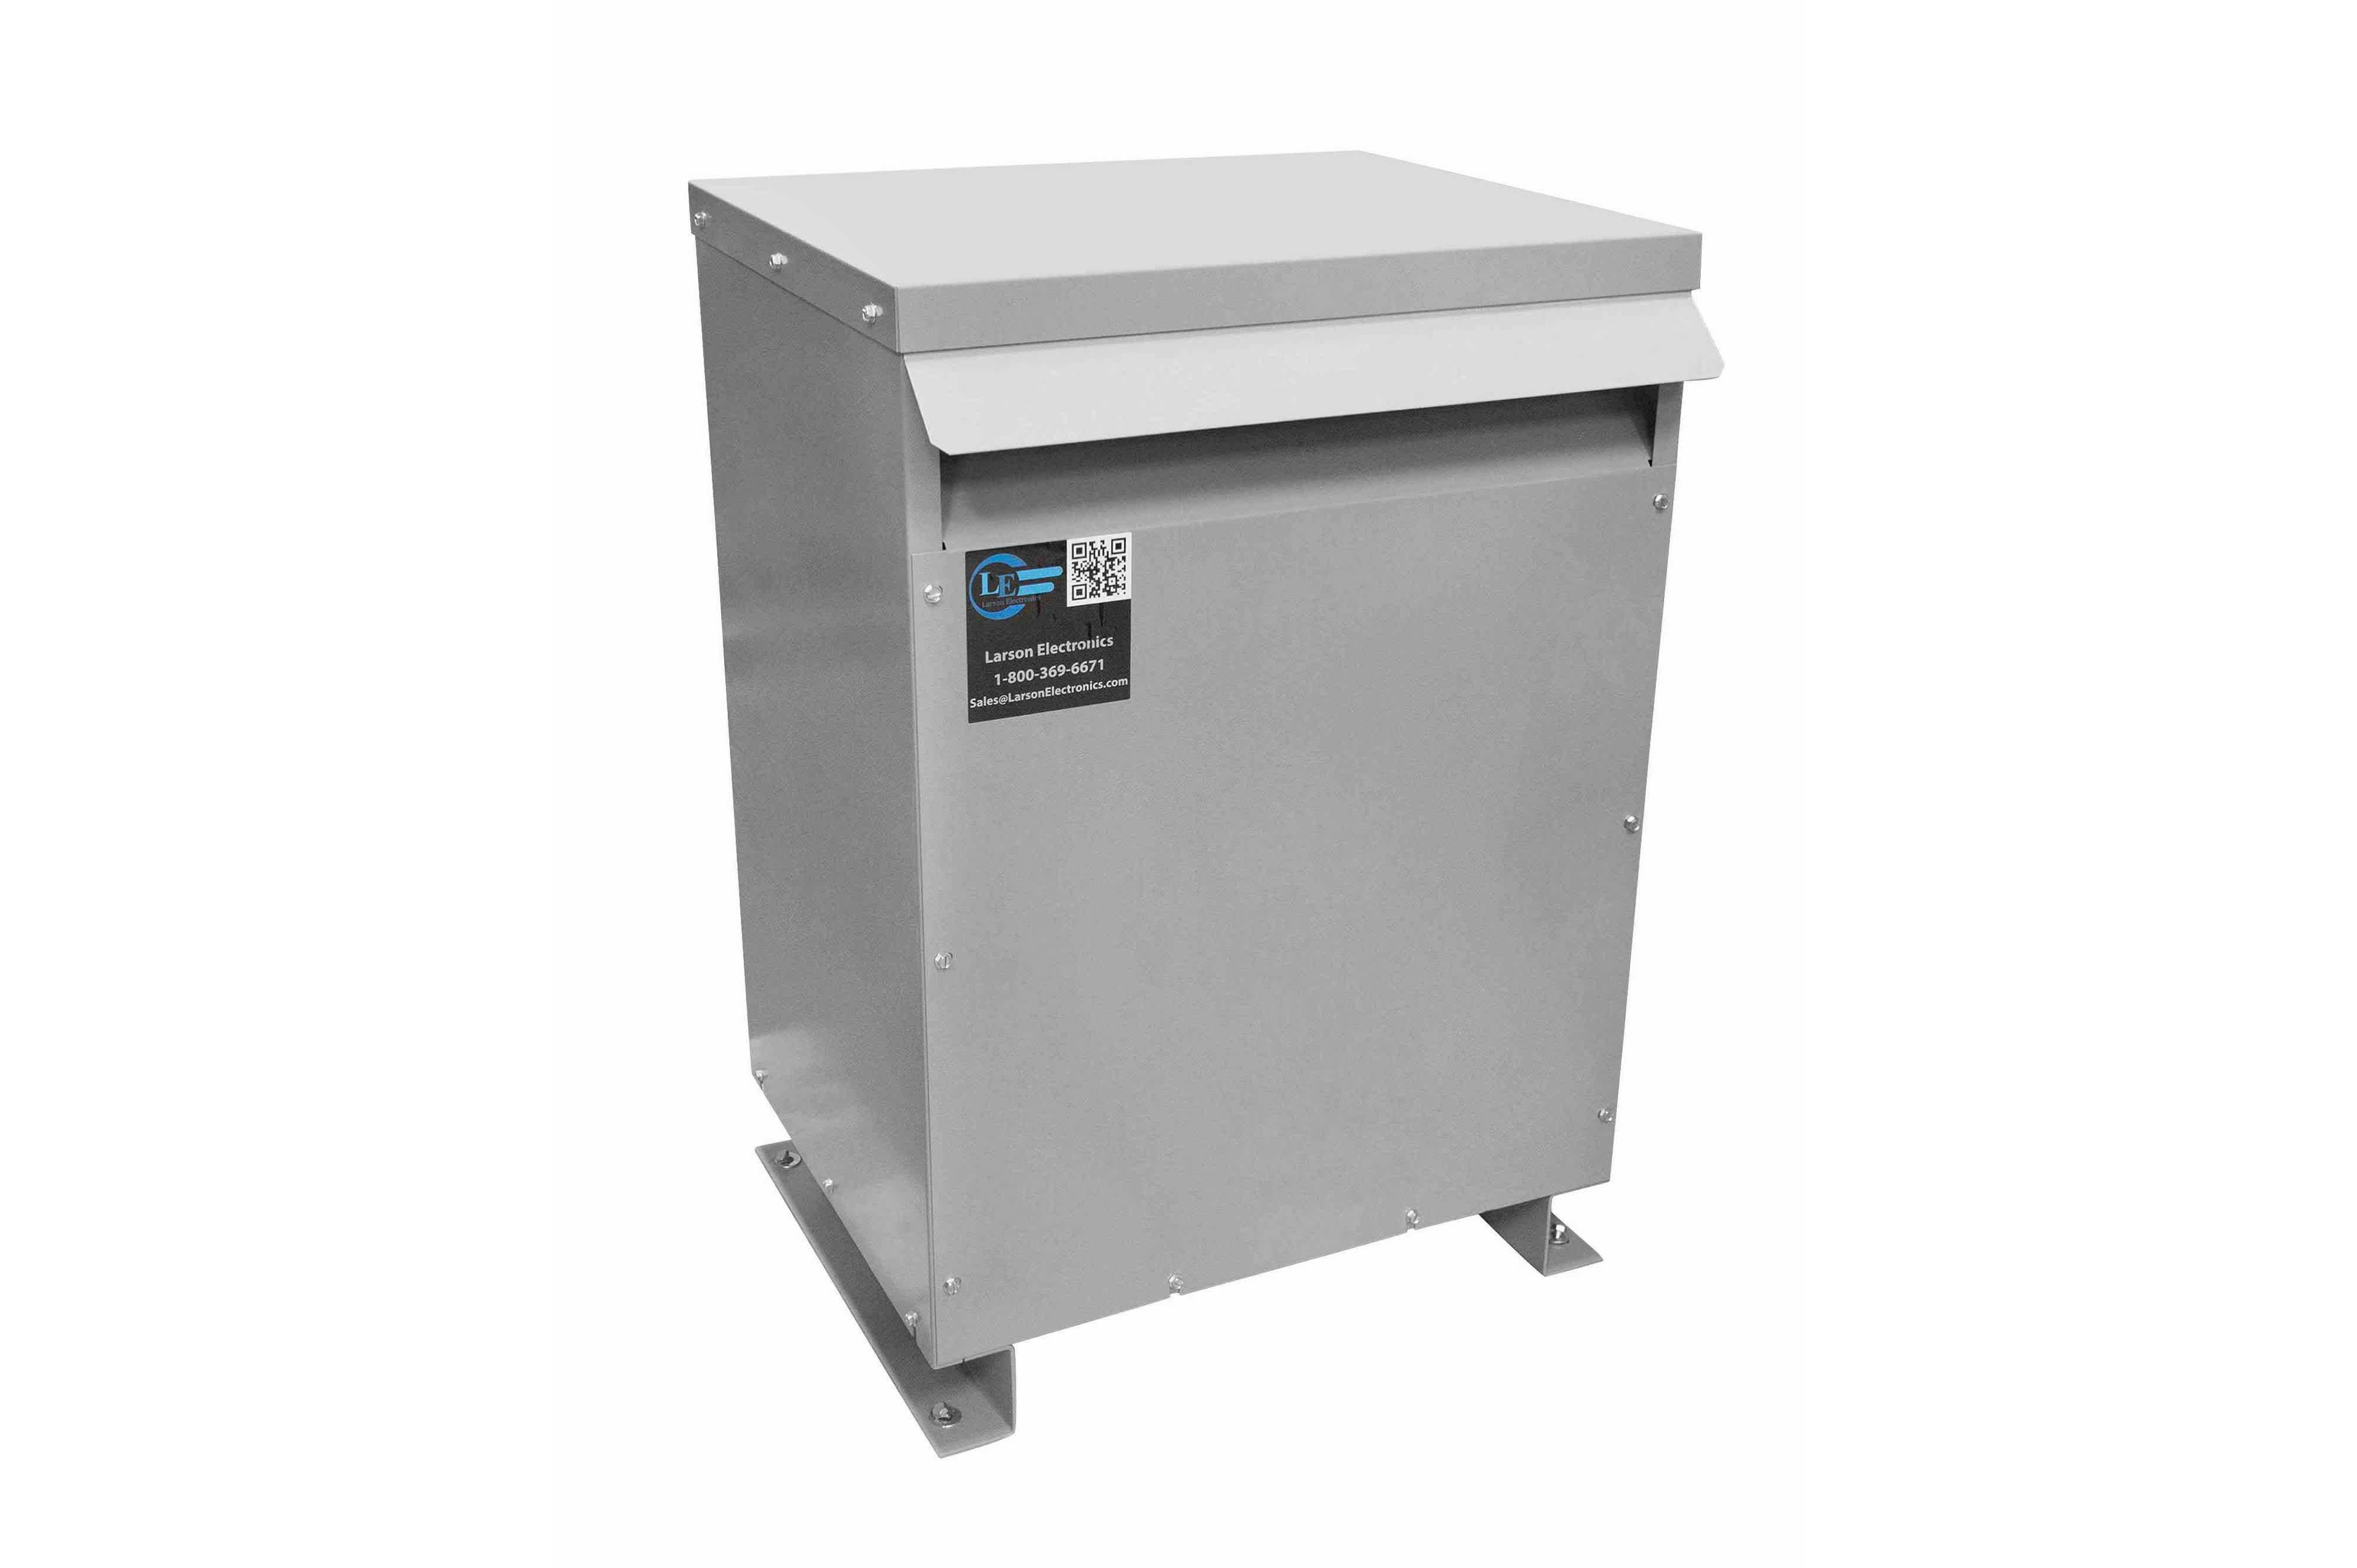 100 kVA 3PH Isolation Transformer, 460V Delta Primary, 600V Delta Secondary, N3R, Ventilated, 60 Hz